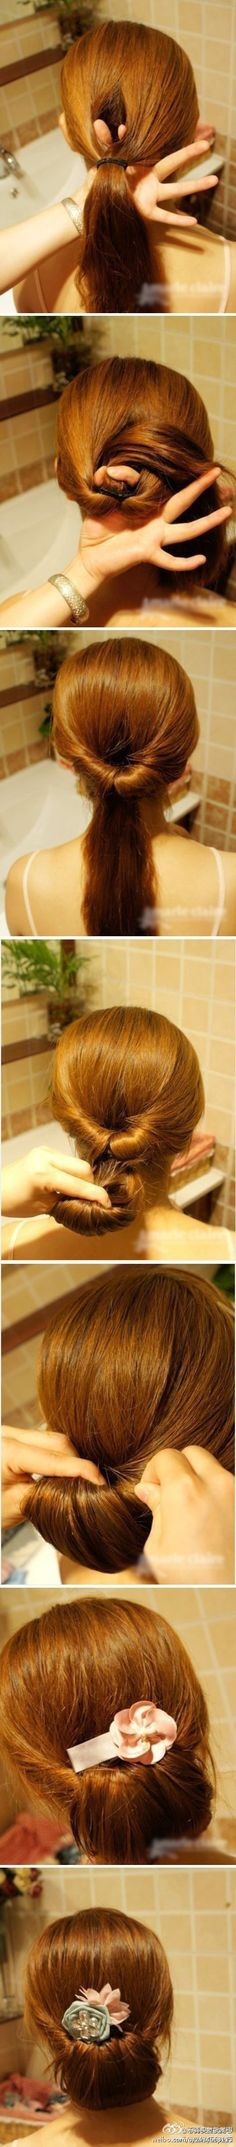 An Updated Chignon - Lazy Hair Day Summer Hairstyles, Pretty Hairstyles, Girl Hairstyles, Wedding Hairstyles, Wedding Updo, Lower Bun Hairstyles, Running Late Hairstyles, Easy Formal Hairstyles, Bridal Bun